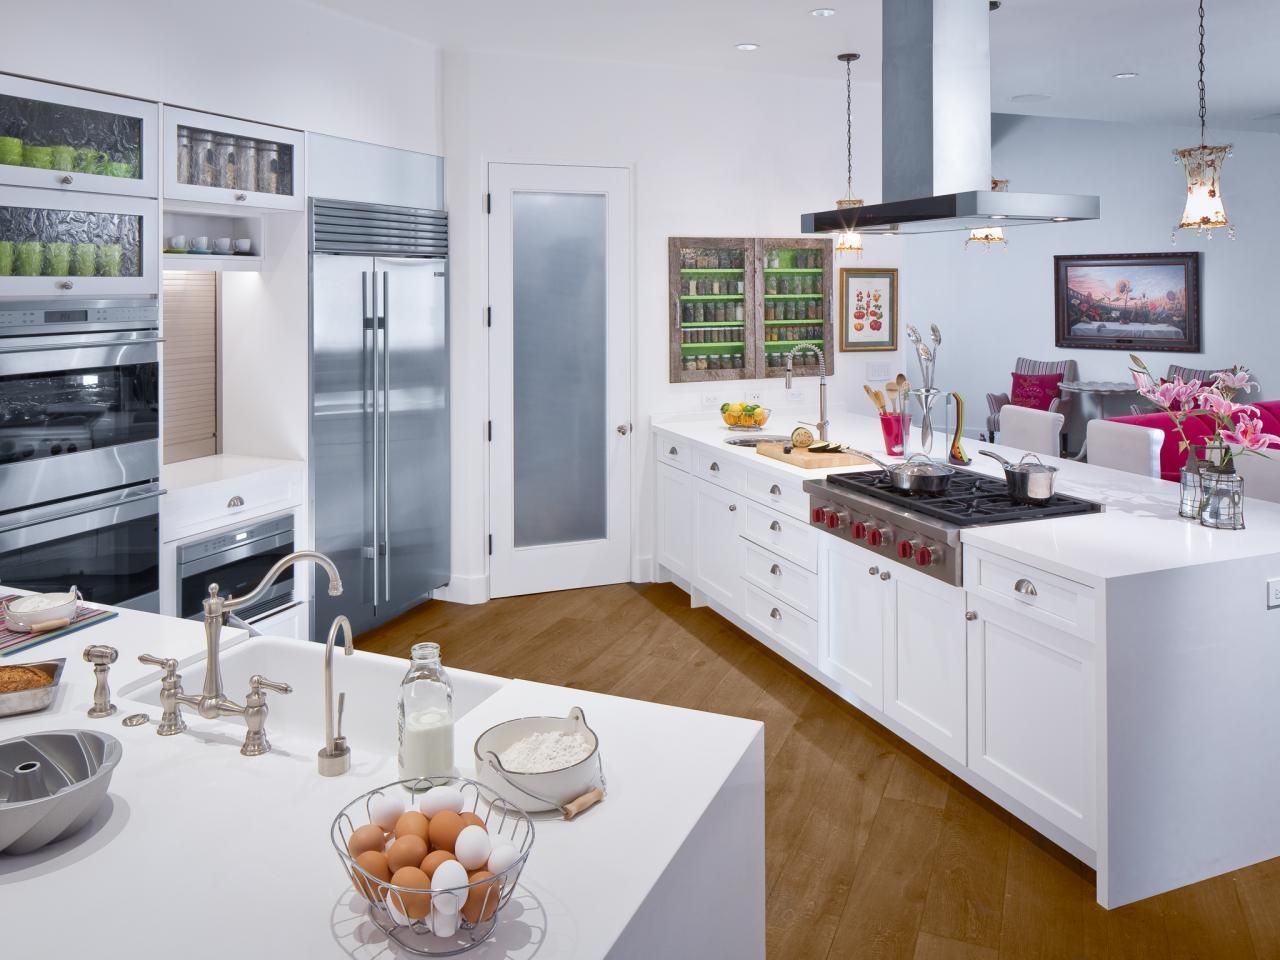 2015 NKBA People\'s Pick: Best Kitchen | Pink accents, Kitchen ...